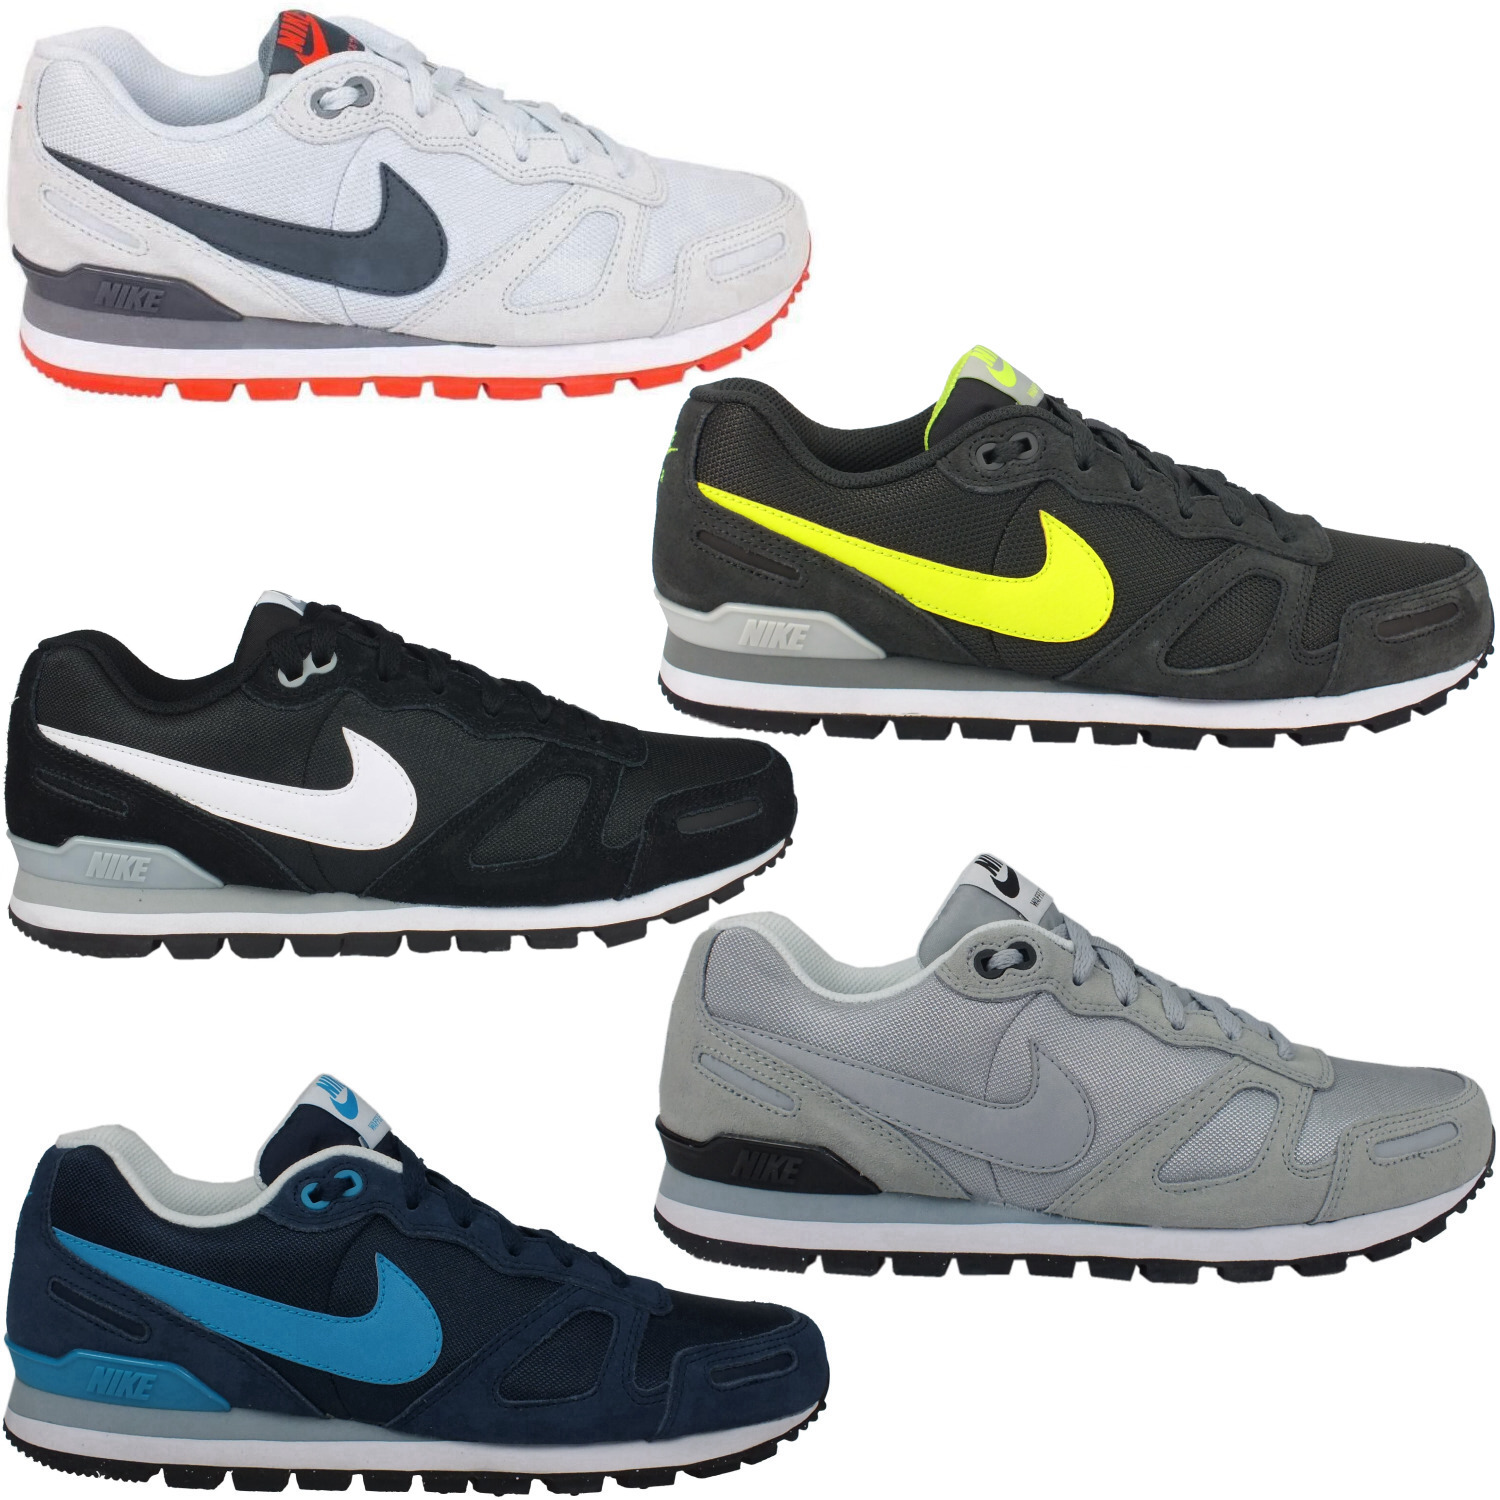 nike air waffle trainer herren schuhe turnschuhe sneaker diverse farben ebay. Black Bedroom Furniture Sets. Home Design Ideas